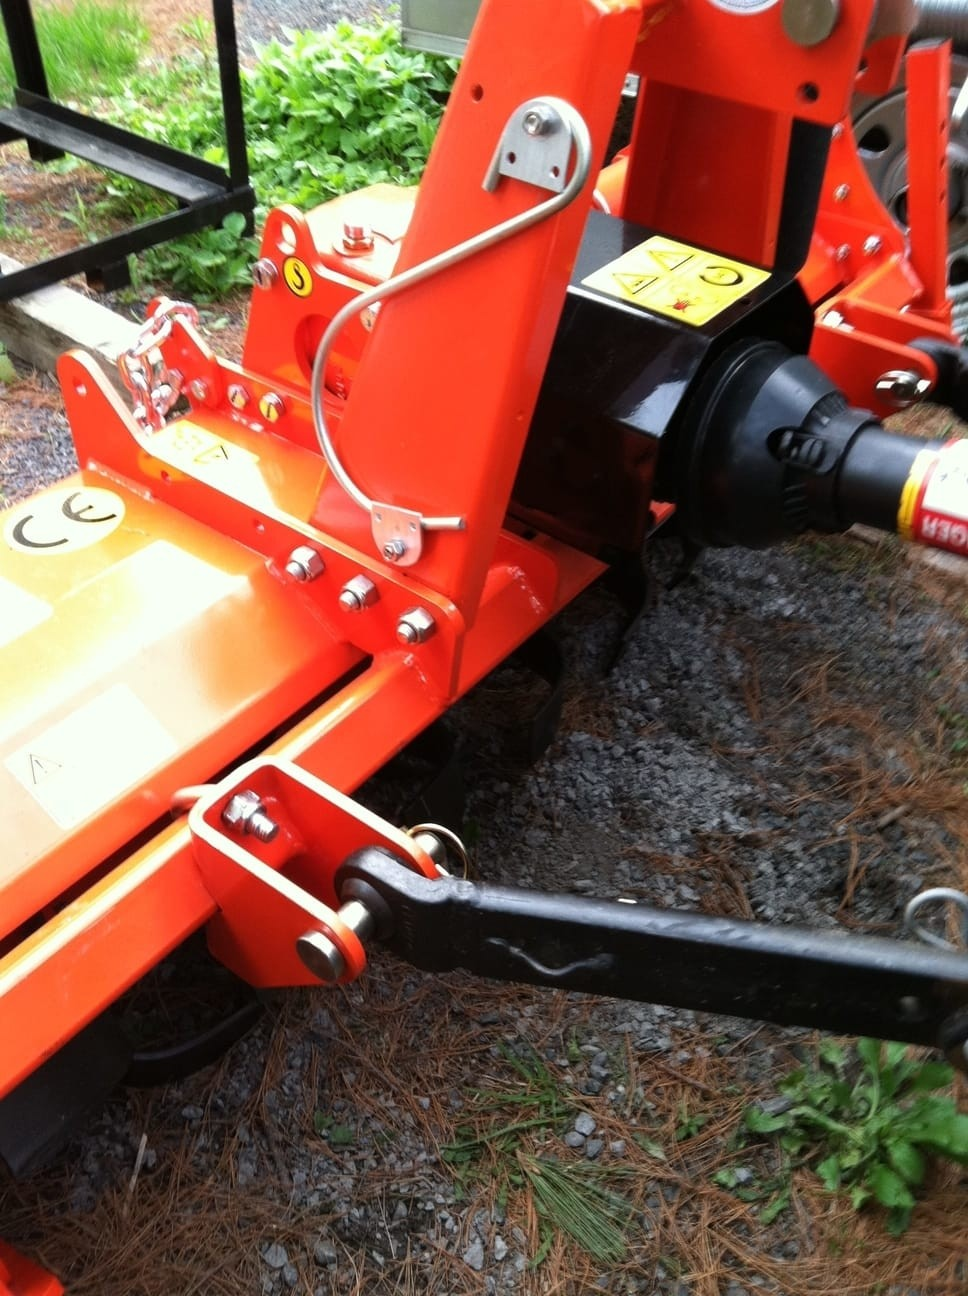 Class 4 Hitch >> 3 Point Rototiller - Rotary Tillers for Sale | Cosmo Rotary Tillers